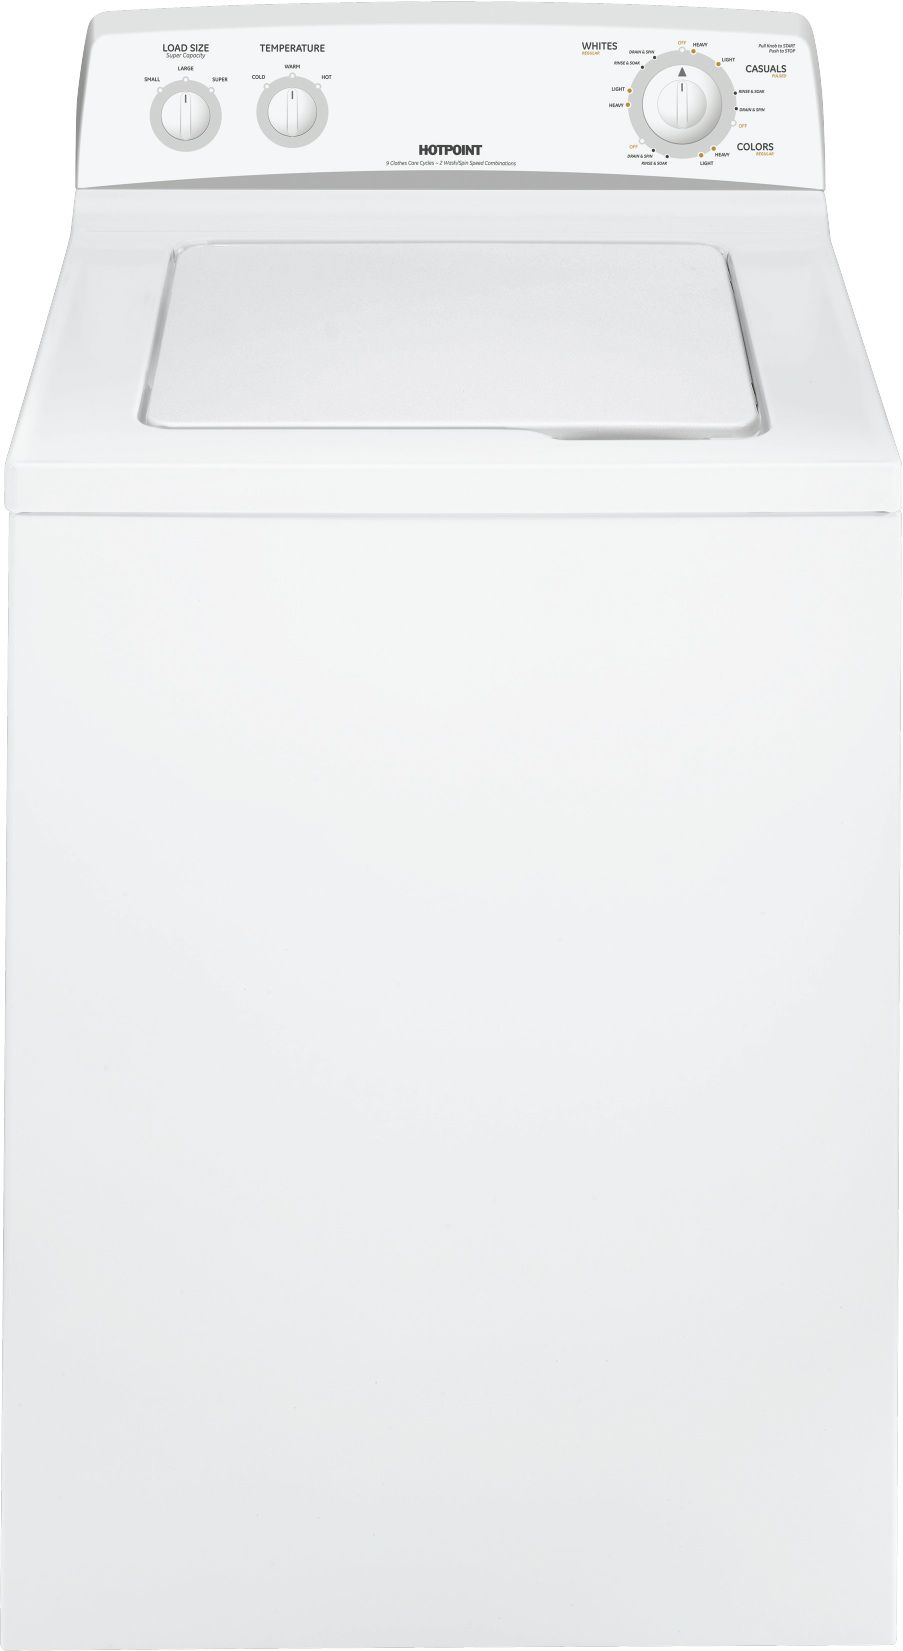 3.5 cu. ft. Top Load Washer - White